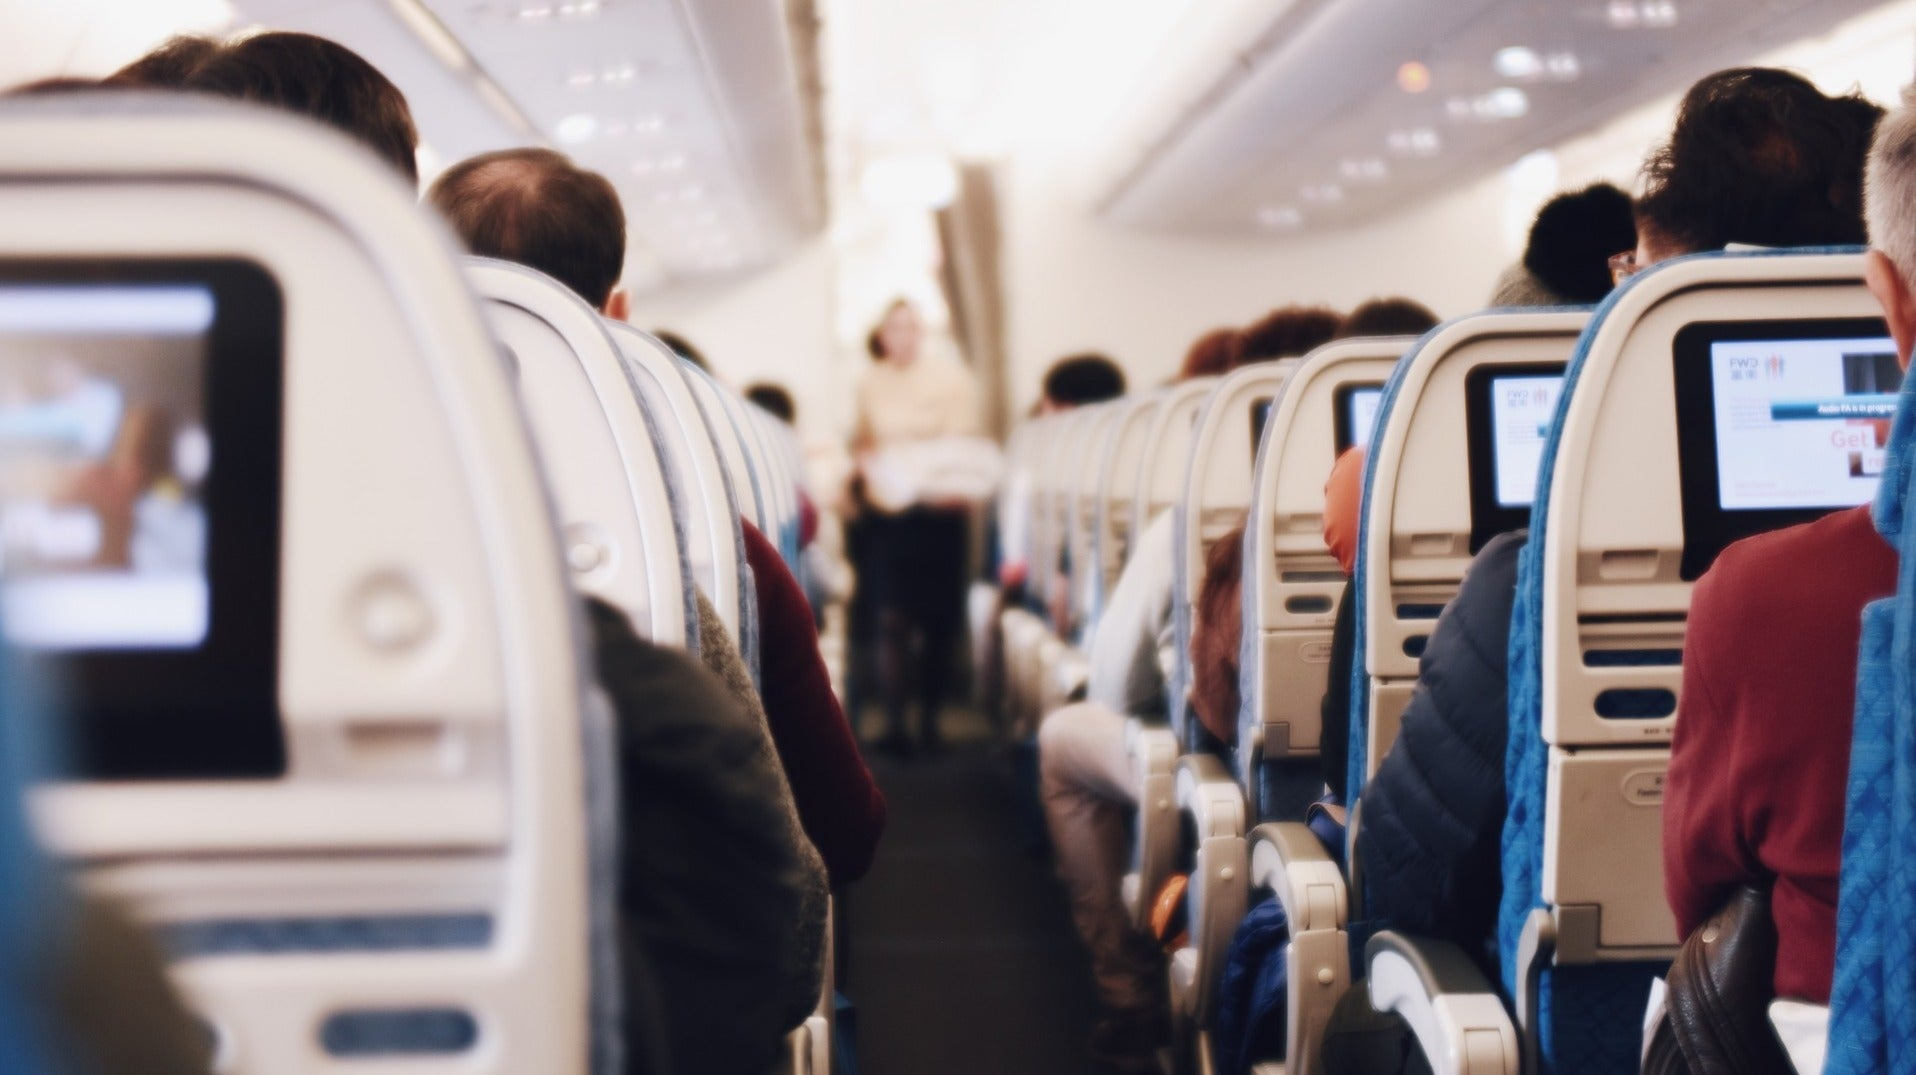 How To Reserve 'Blocked' Seats On Aeroplane Flights